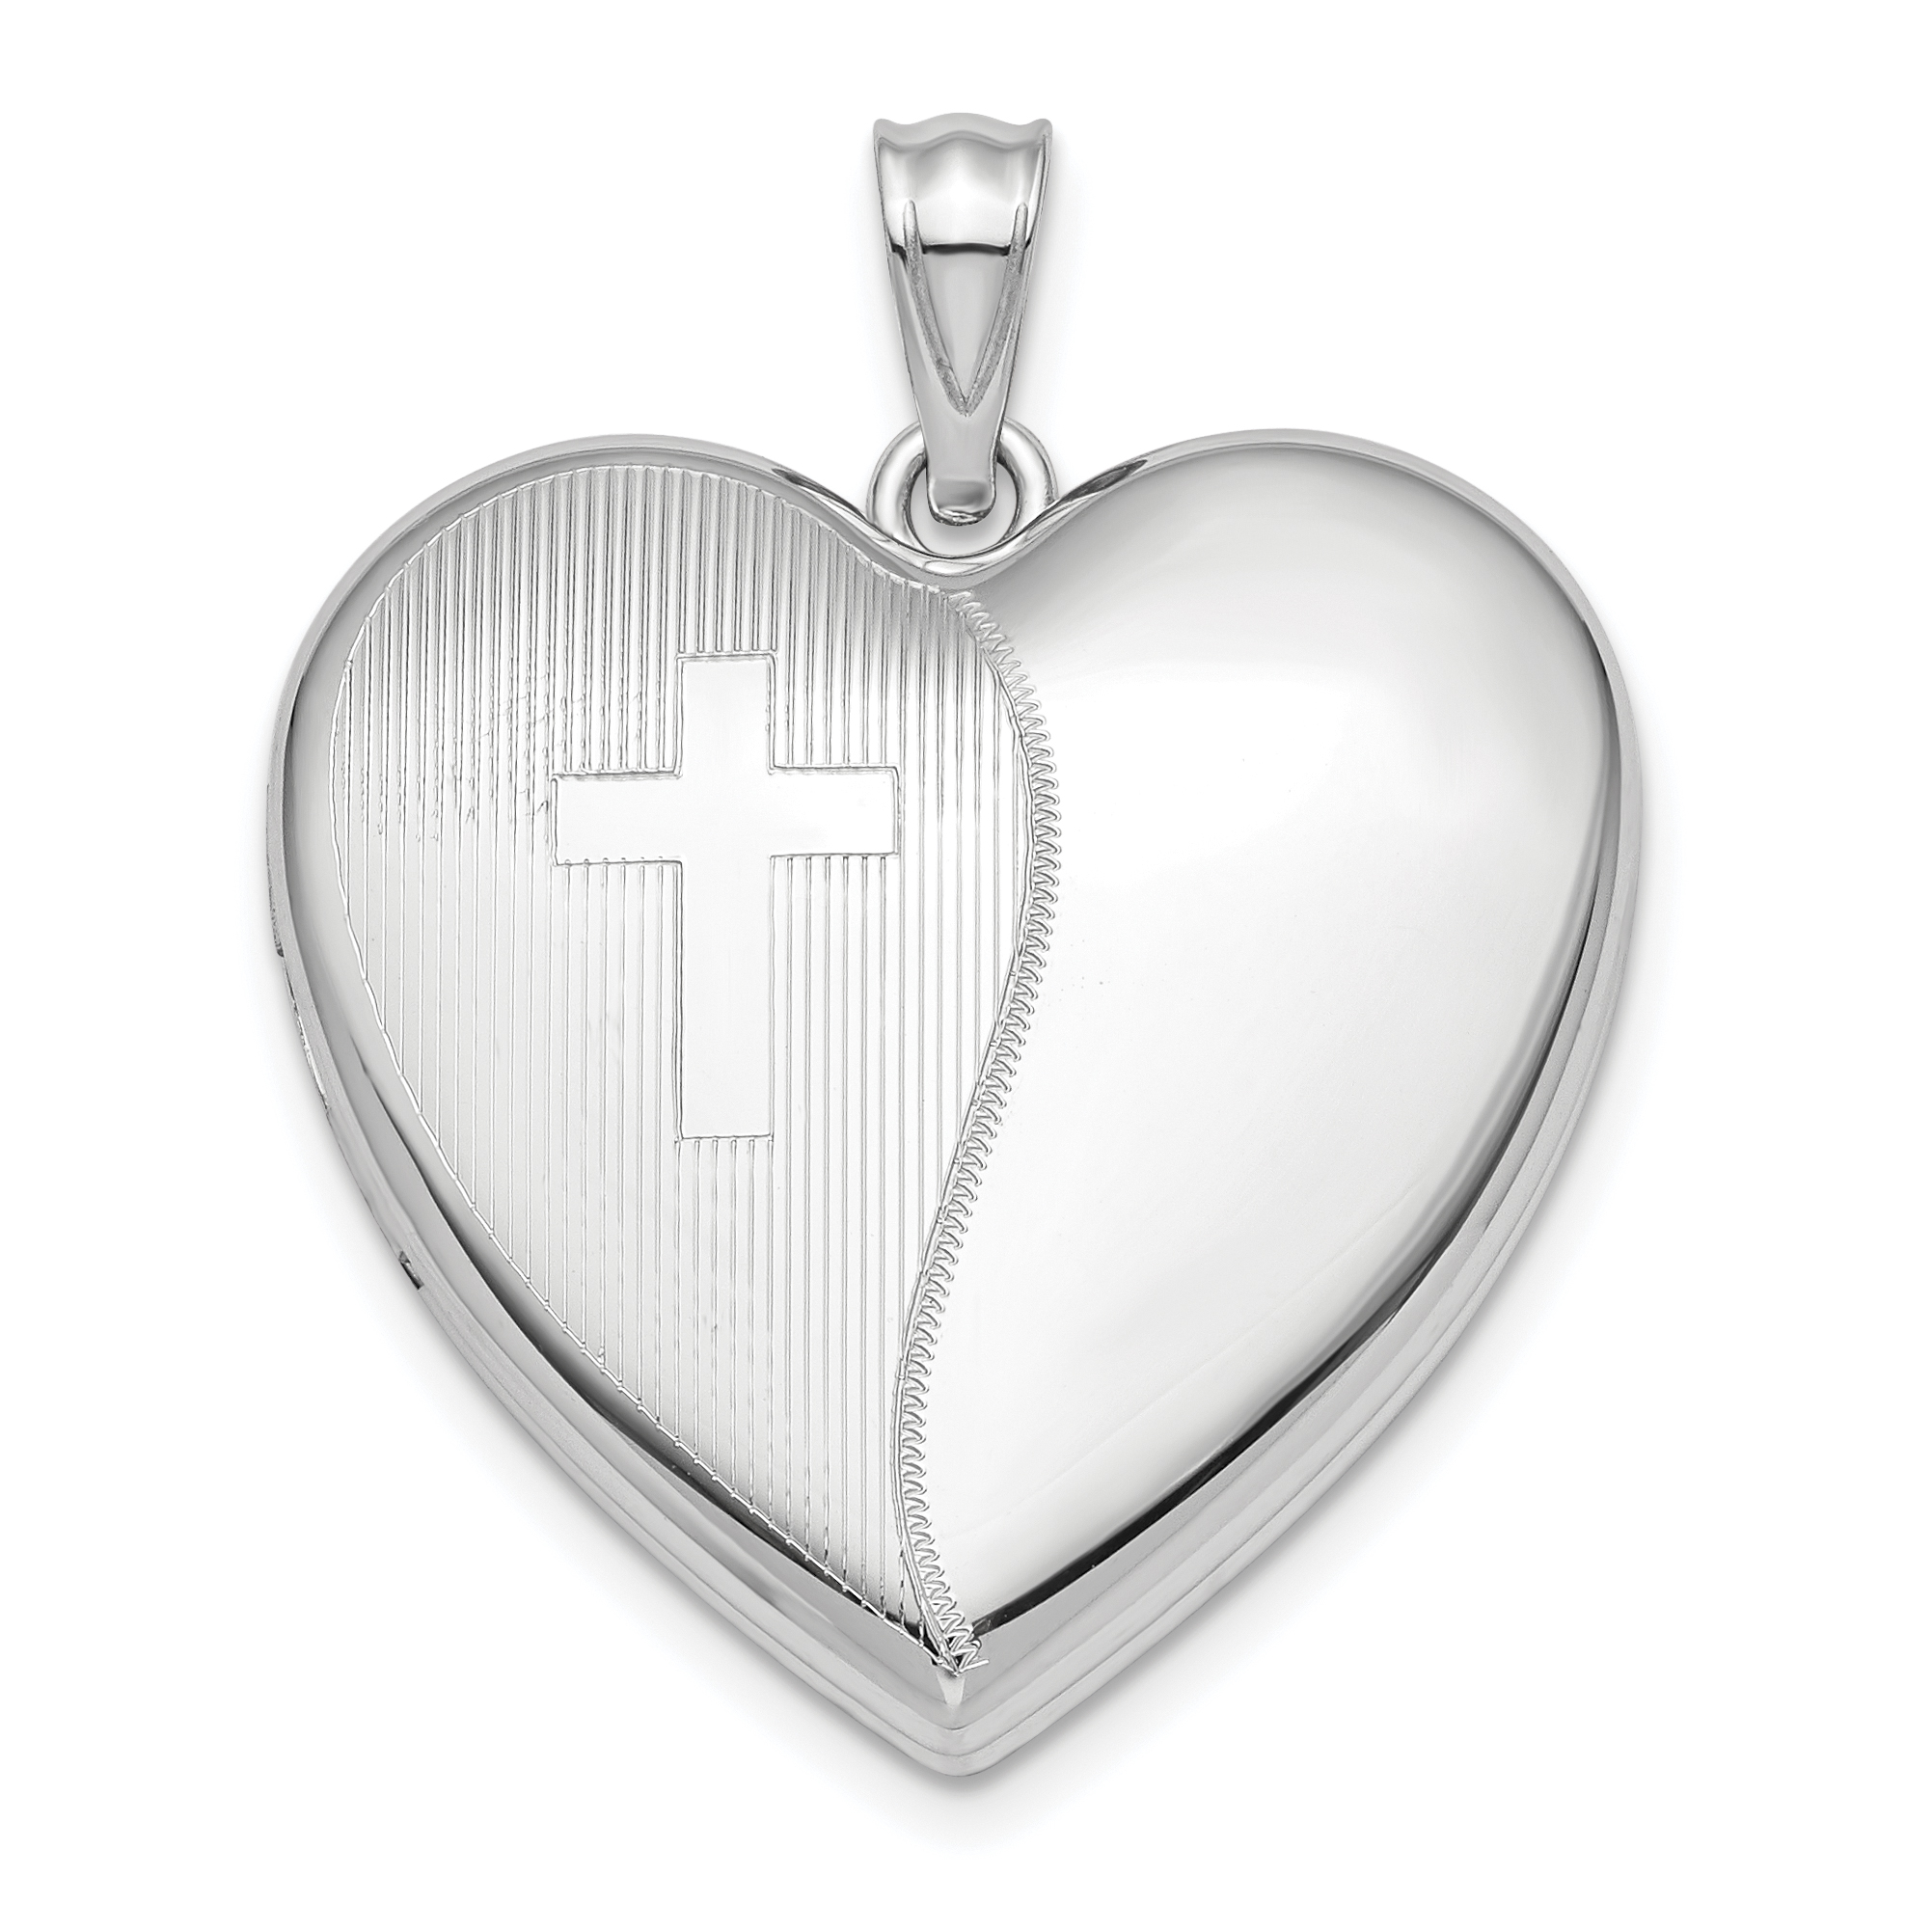 925 Sterling Silver 24mm Cross Religious Design Ash Holder Heart Lock Necklace Pendant Charm Locket Fine Jewelry Gifts For Women For Her - image 4 de 4